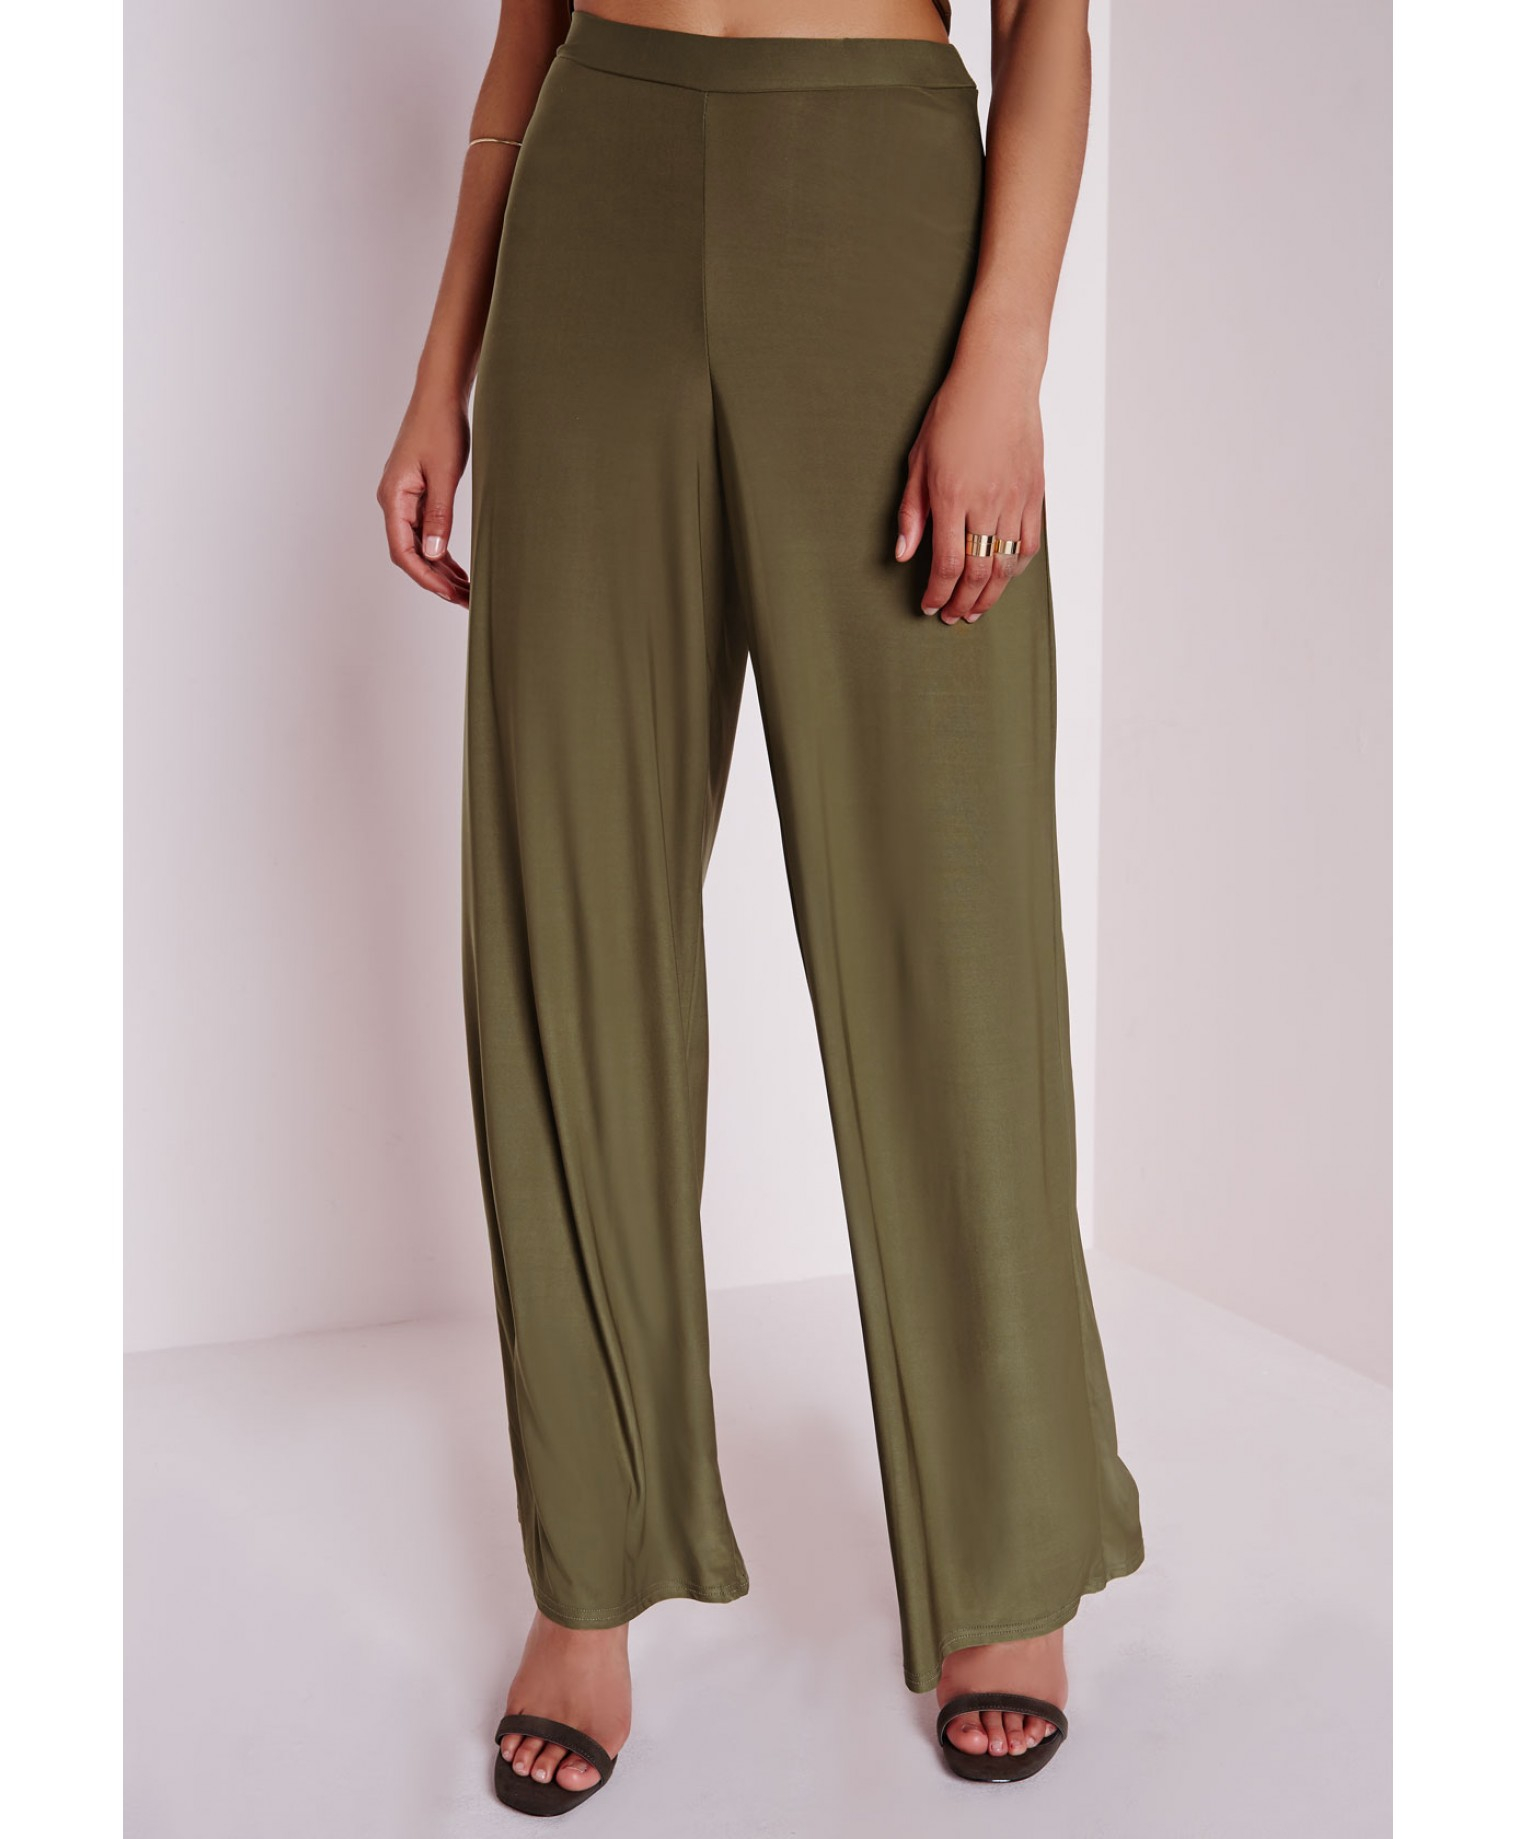 Free shipping BOTH ways on womens wide leg pants, from our vast selection of styles. Fast delivery, and 24/7/ real-person service with a smile. Click or call